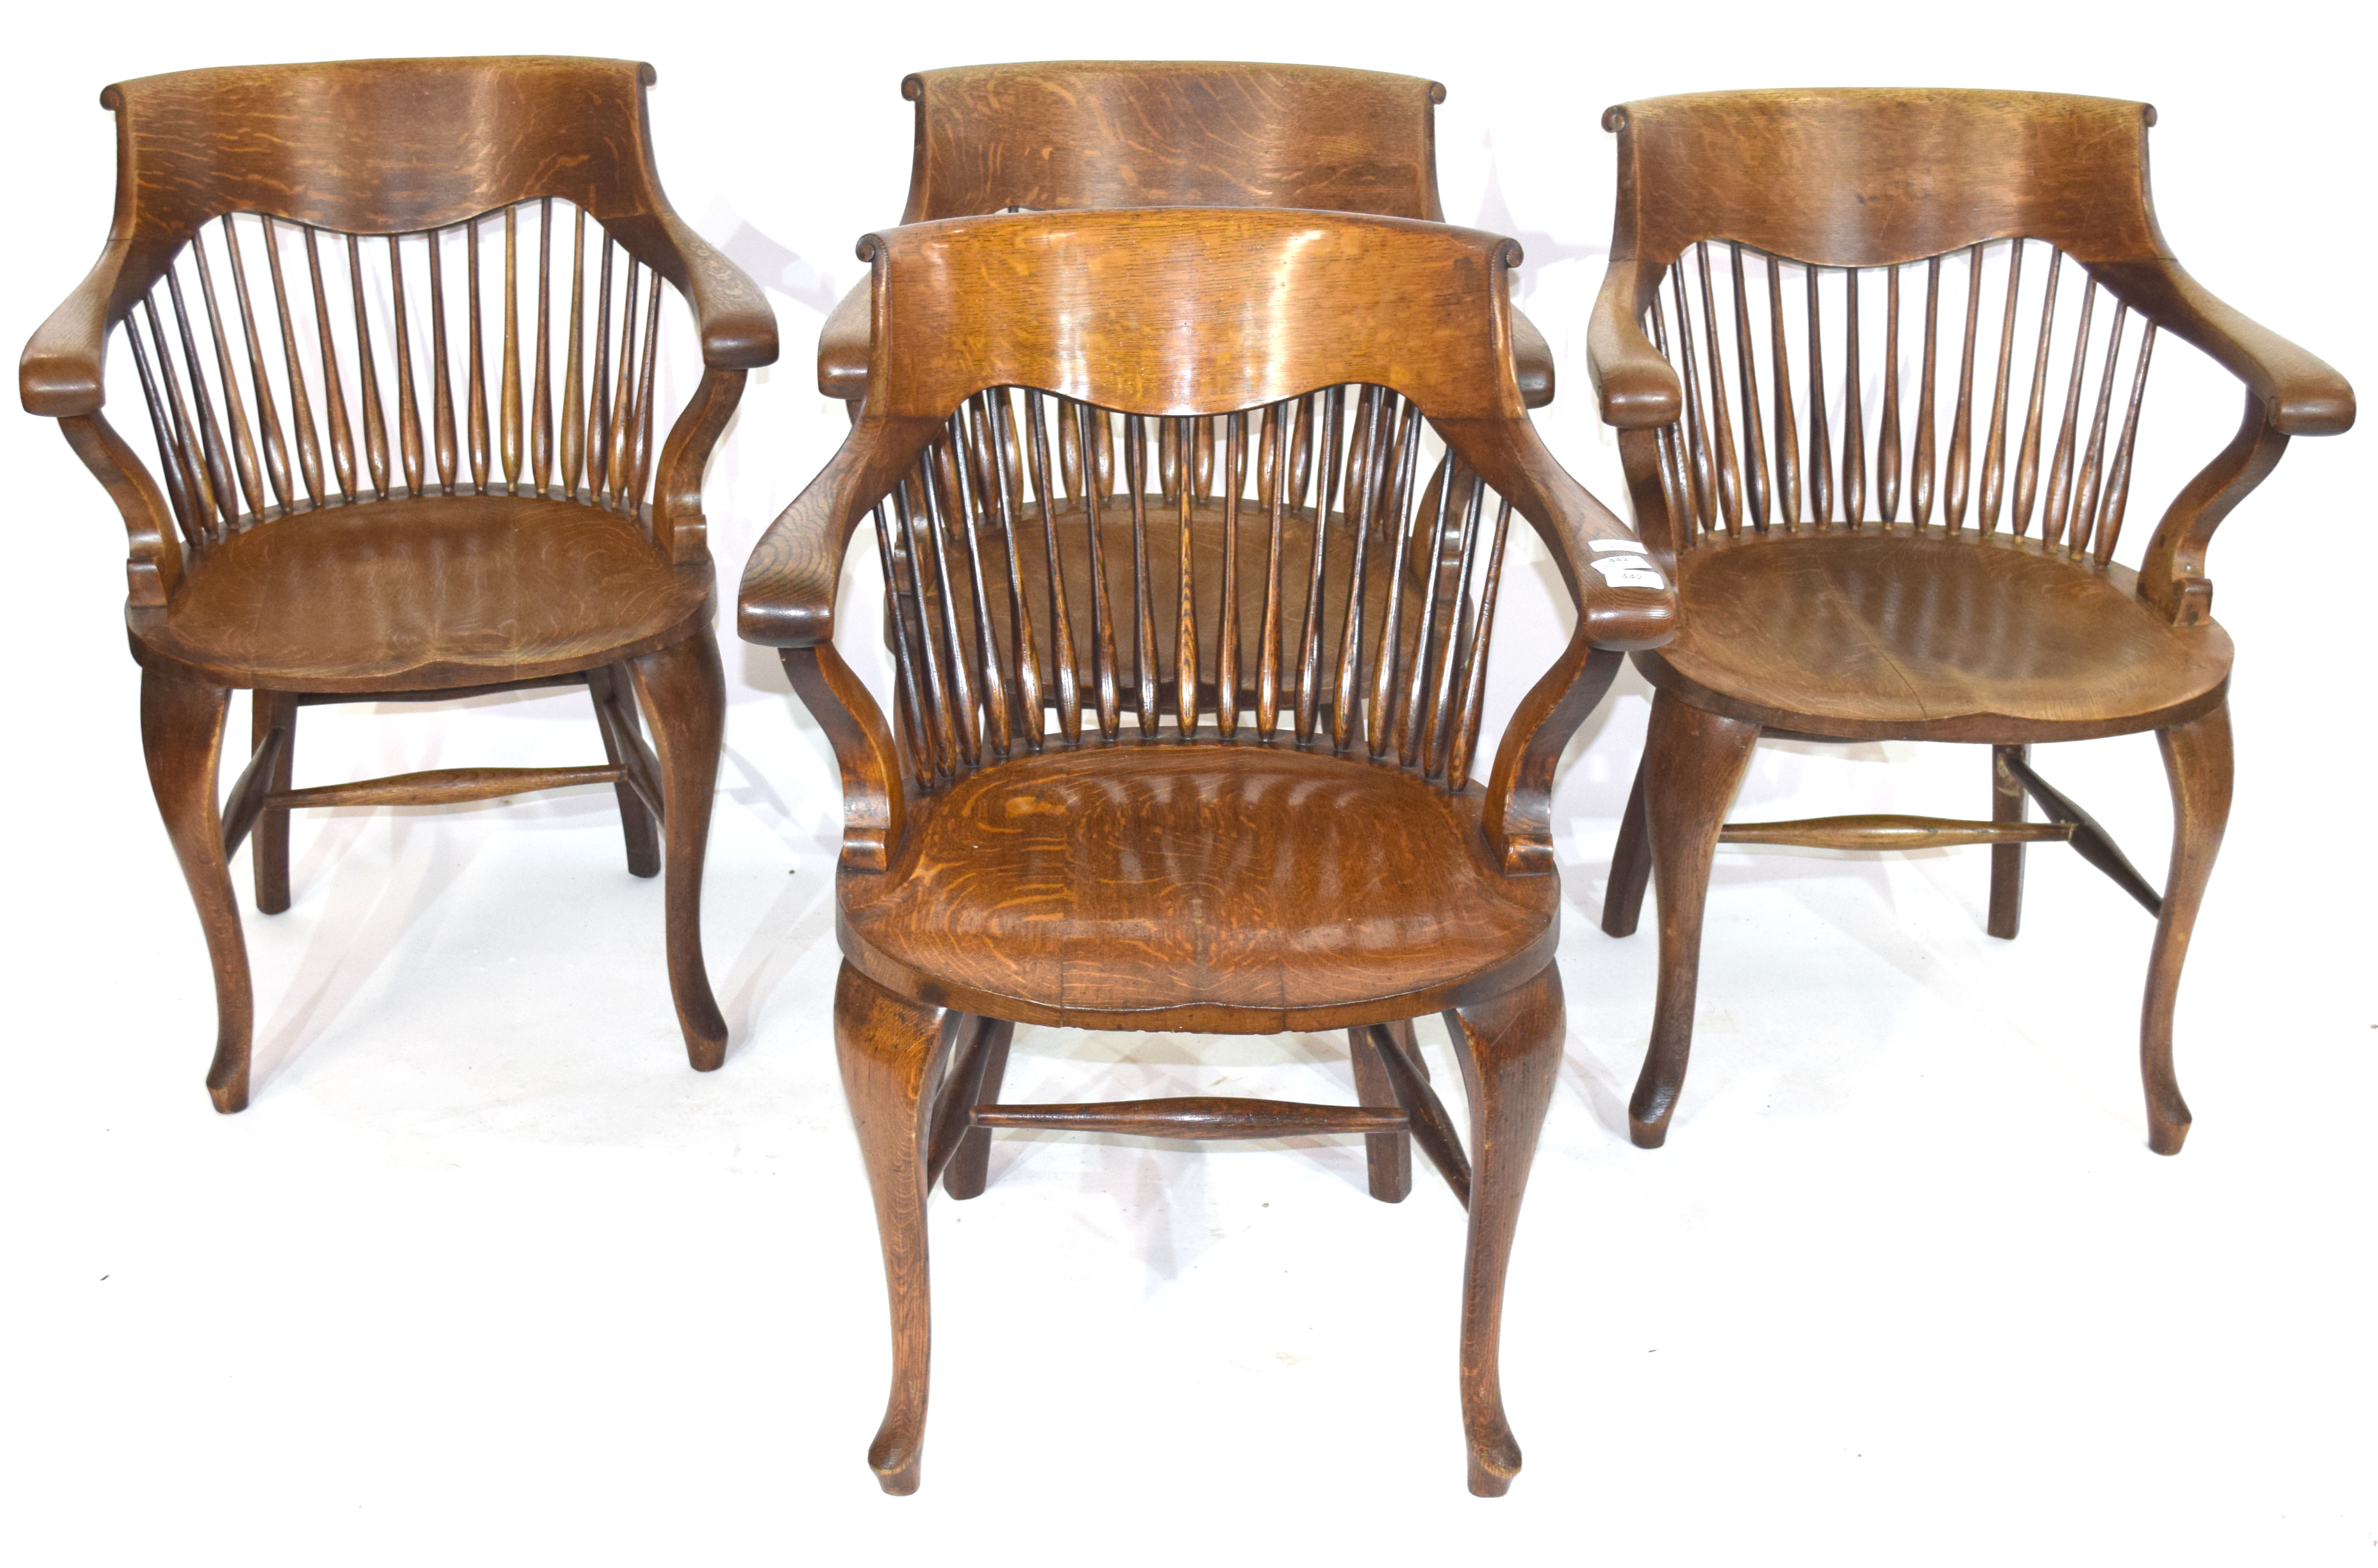 Set of four late 19th century North country oak bow and spindle back chairs